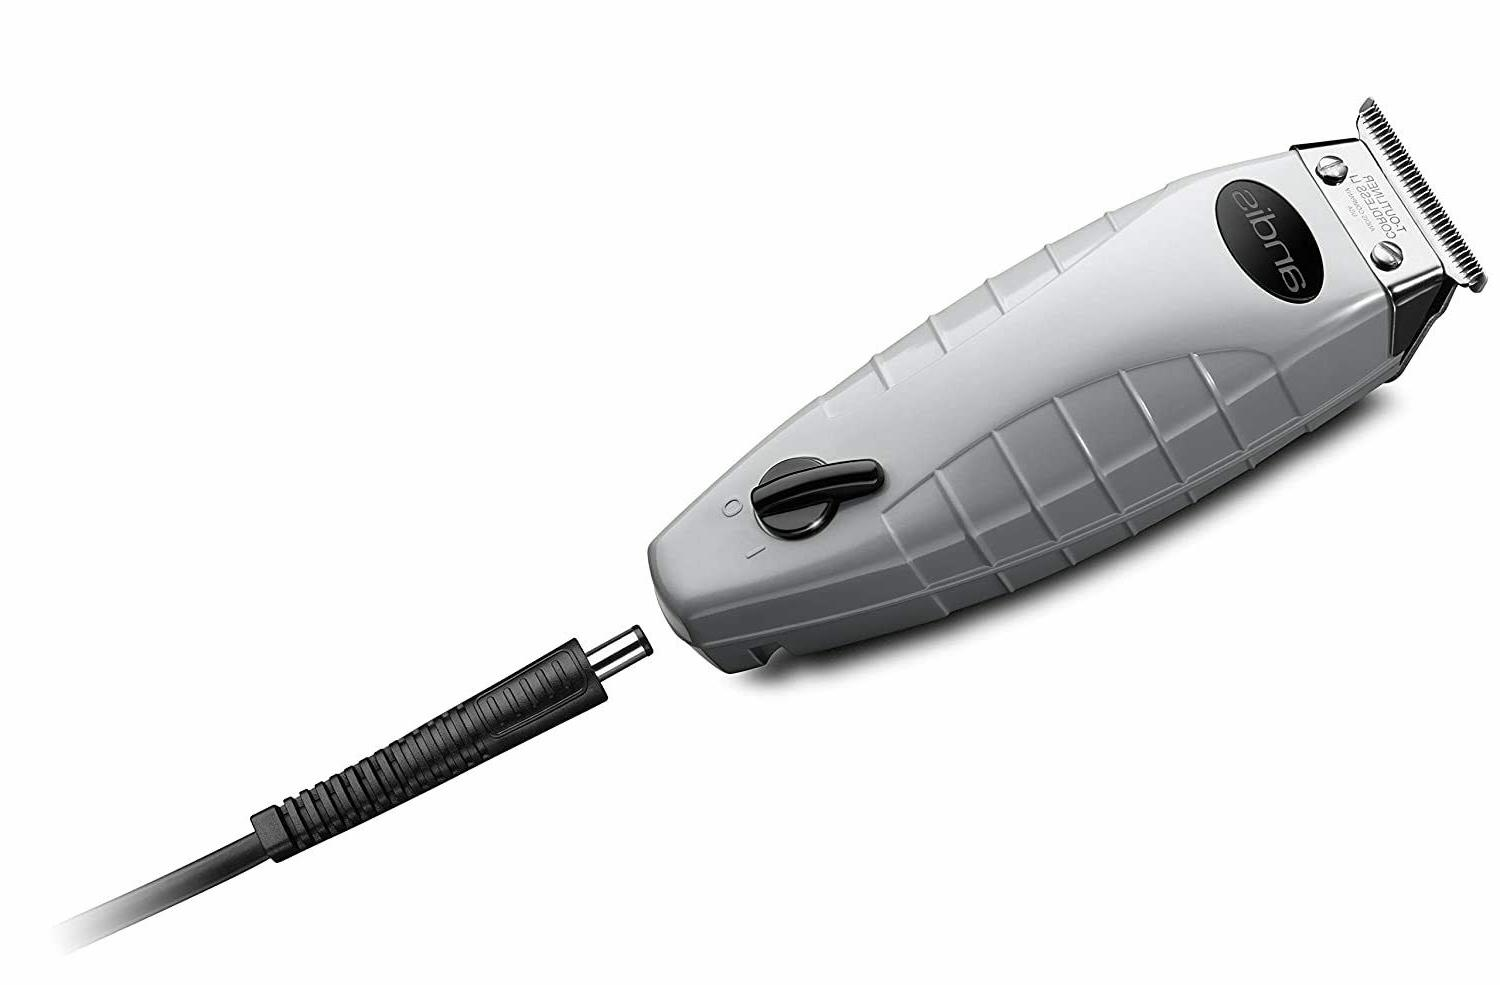 Andis 74000 Professional Cord/Cordless T-Outliner Trimmer 100-240V